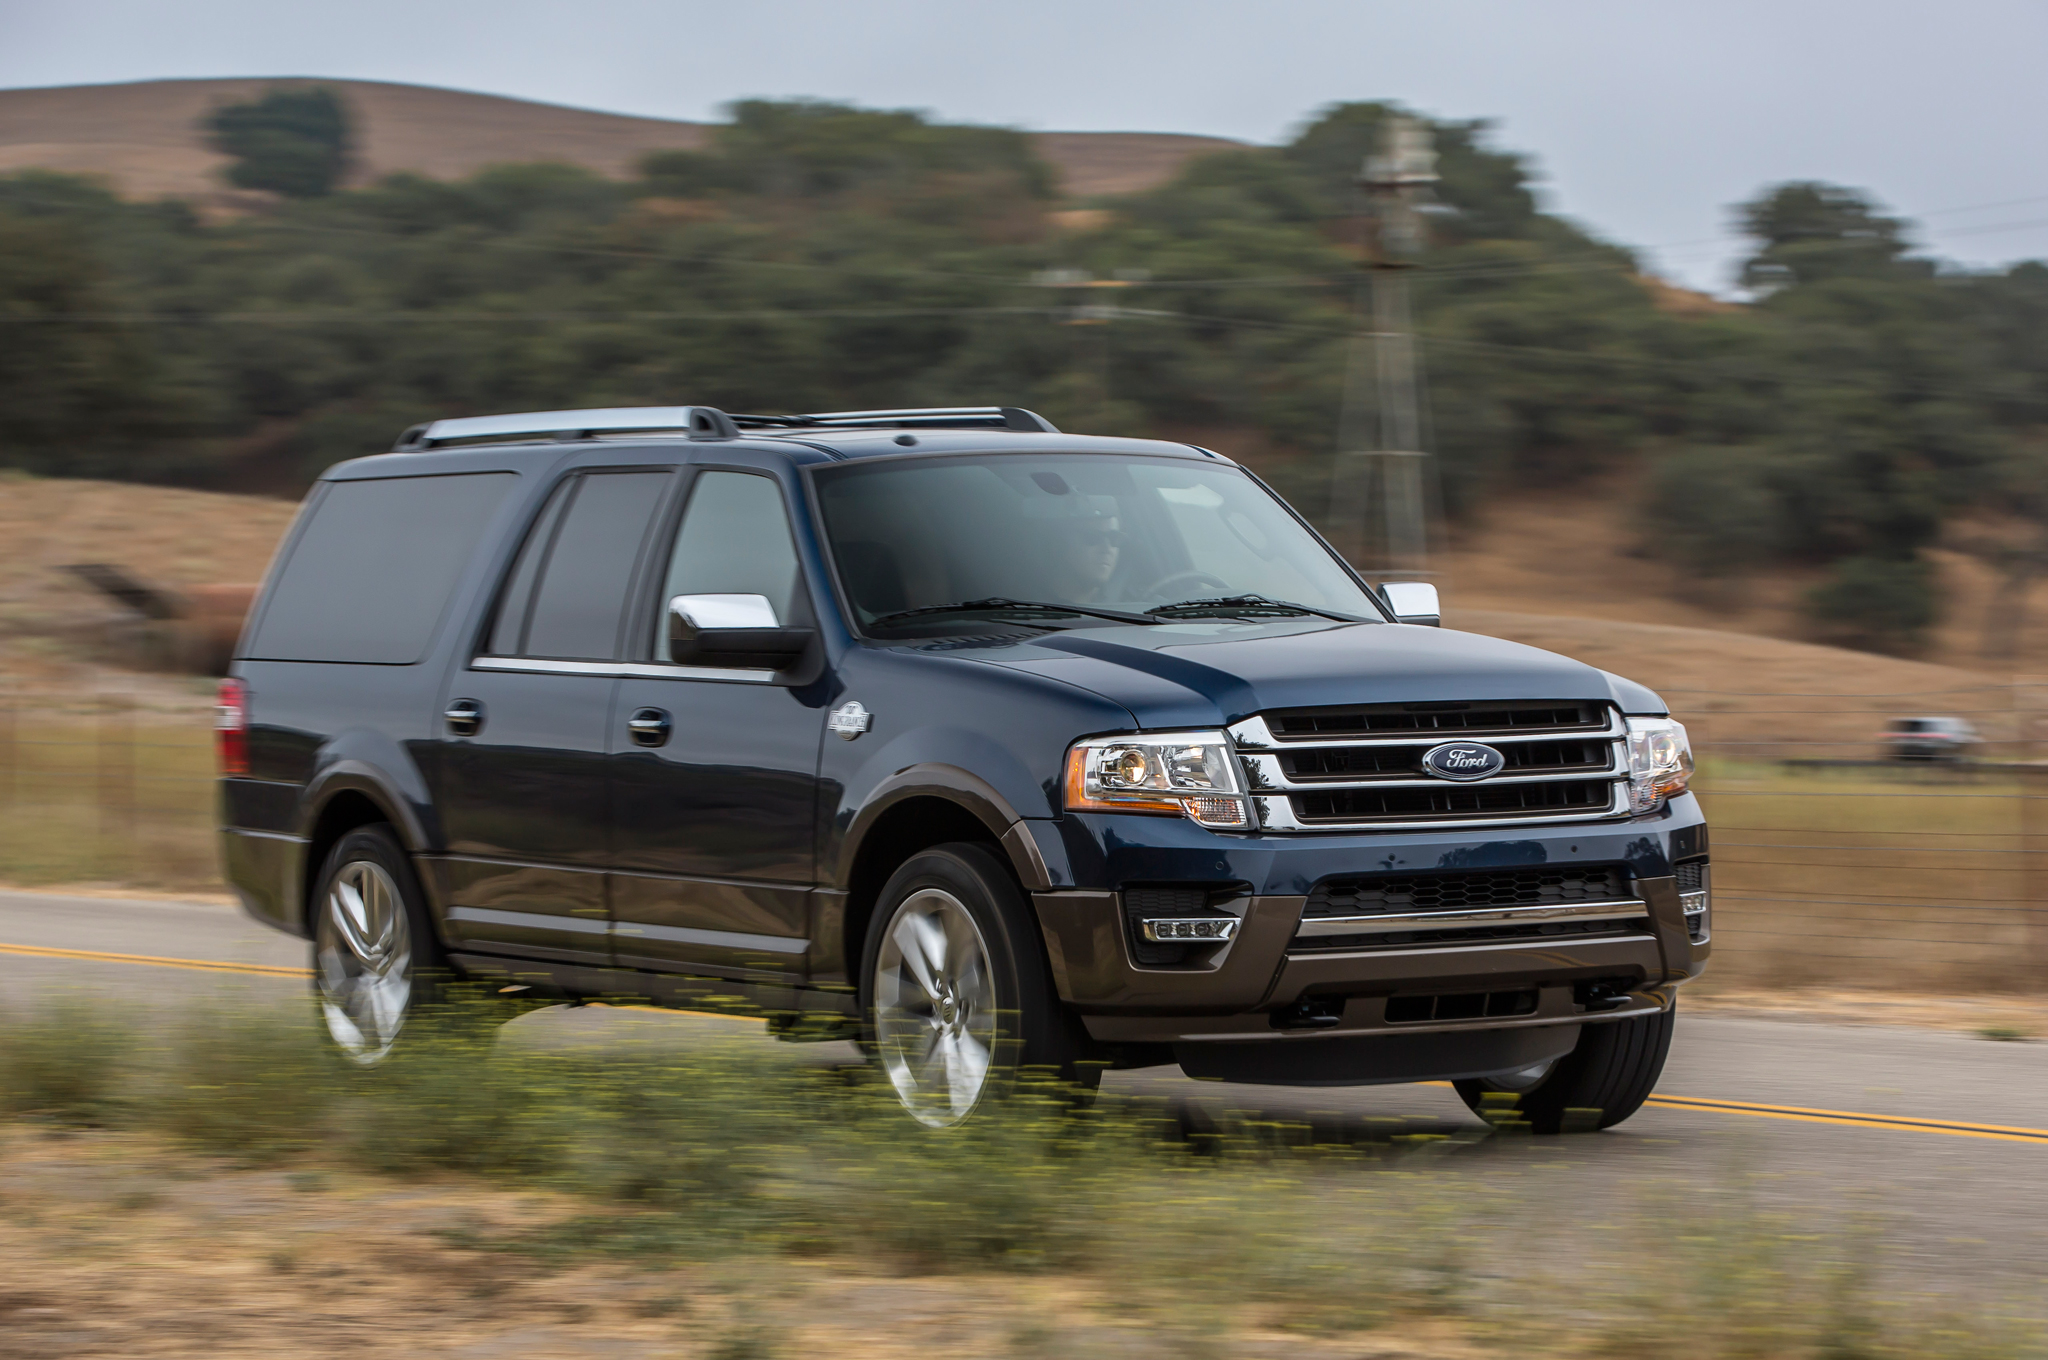 2015 Ford Expedition Test Review (Photo 6 of 6)